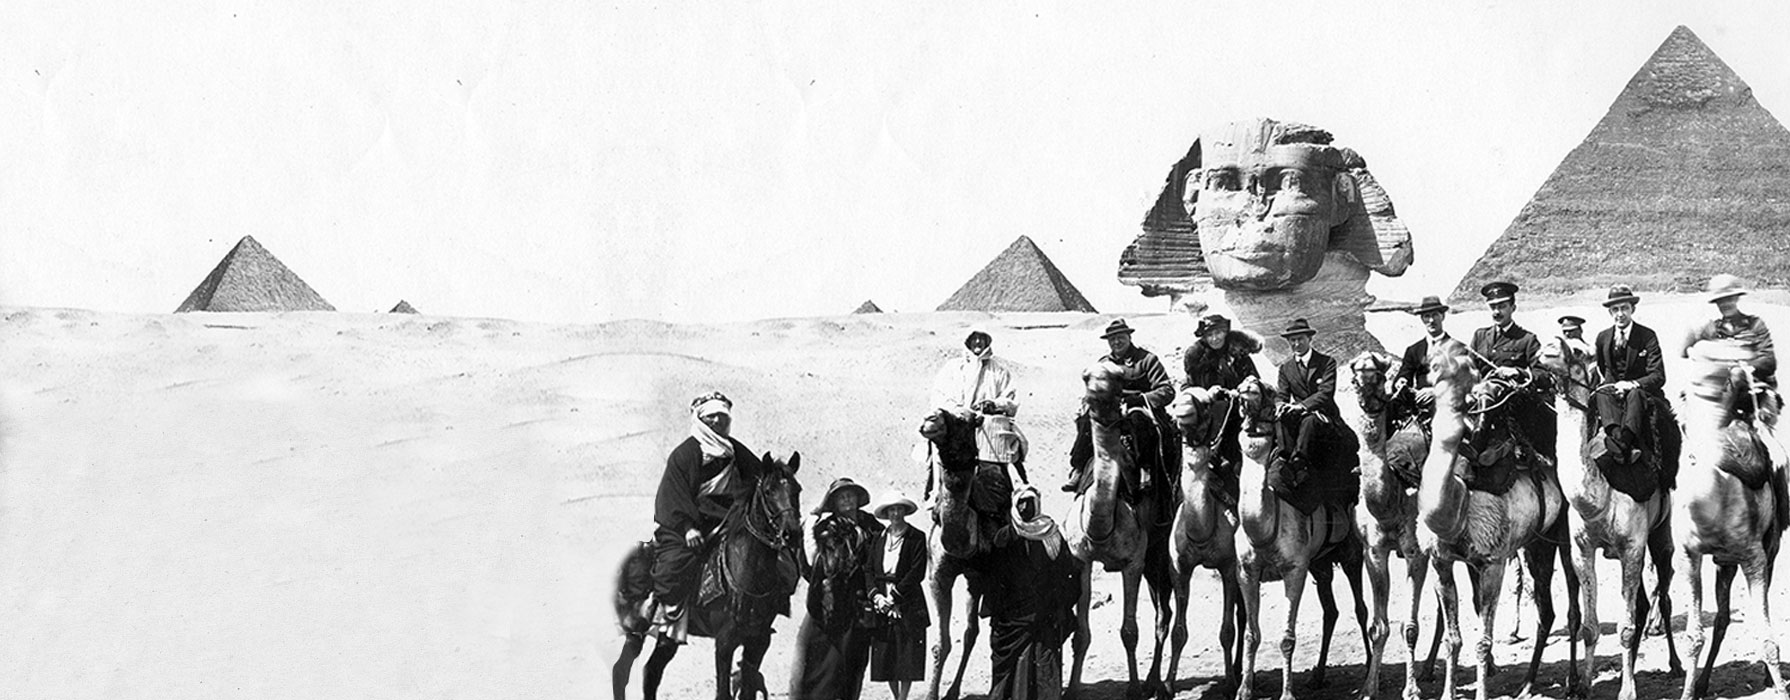 Gertrude Bell archive image of the Pyramids